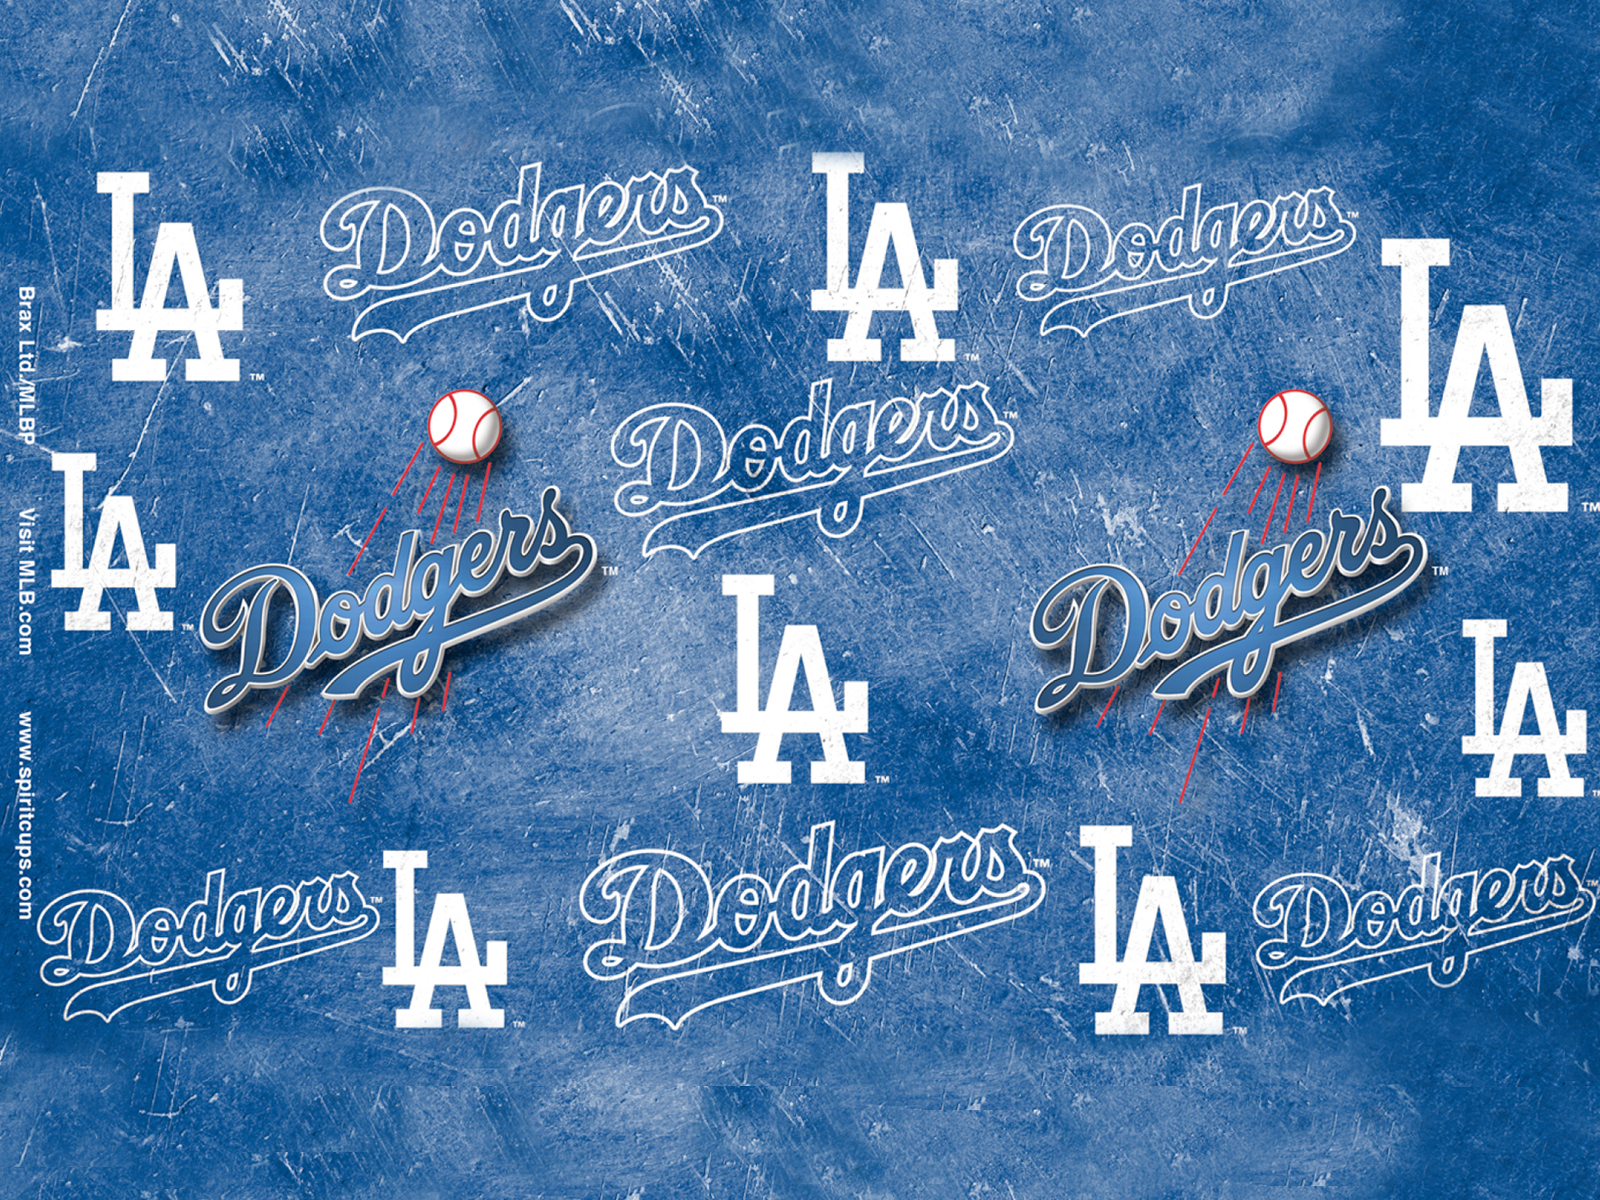 Free Download Los Angeles Dodgers Baseball Wallpaper Dodgers Wallpaper 1600x1200 For Your Desktop Mobile Tablet Explore 73 La Dodgers Background La Dodgers Wallpaper La Dodgers Background La Dodgers Wallpapers